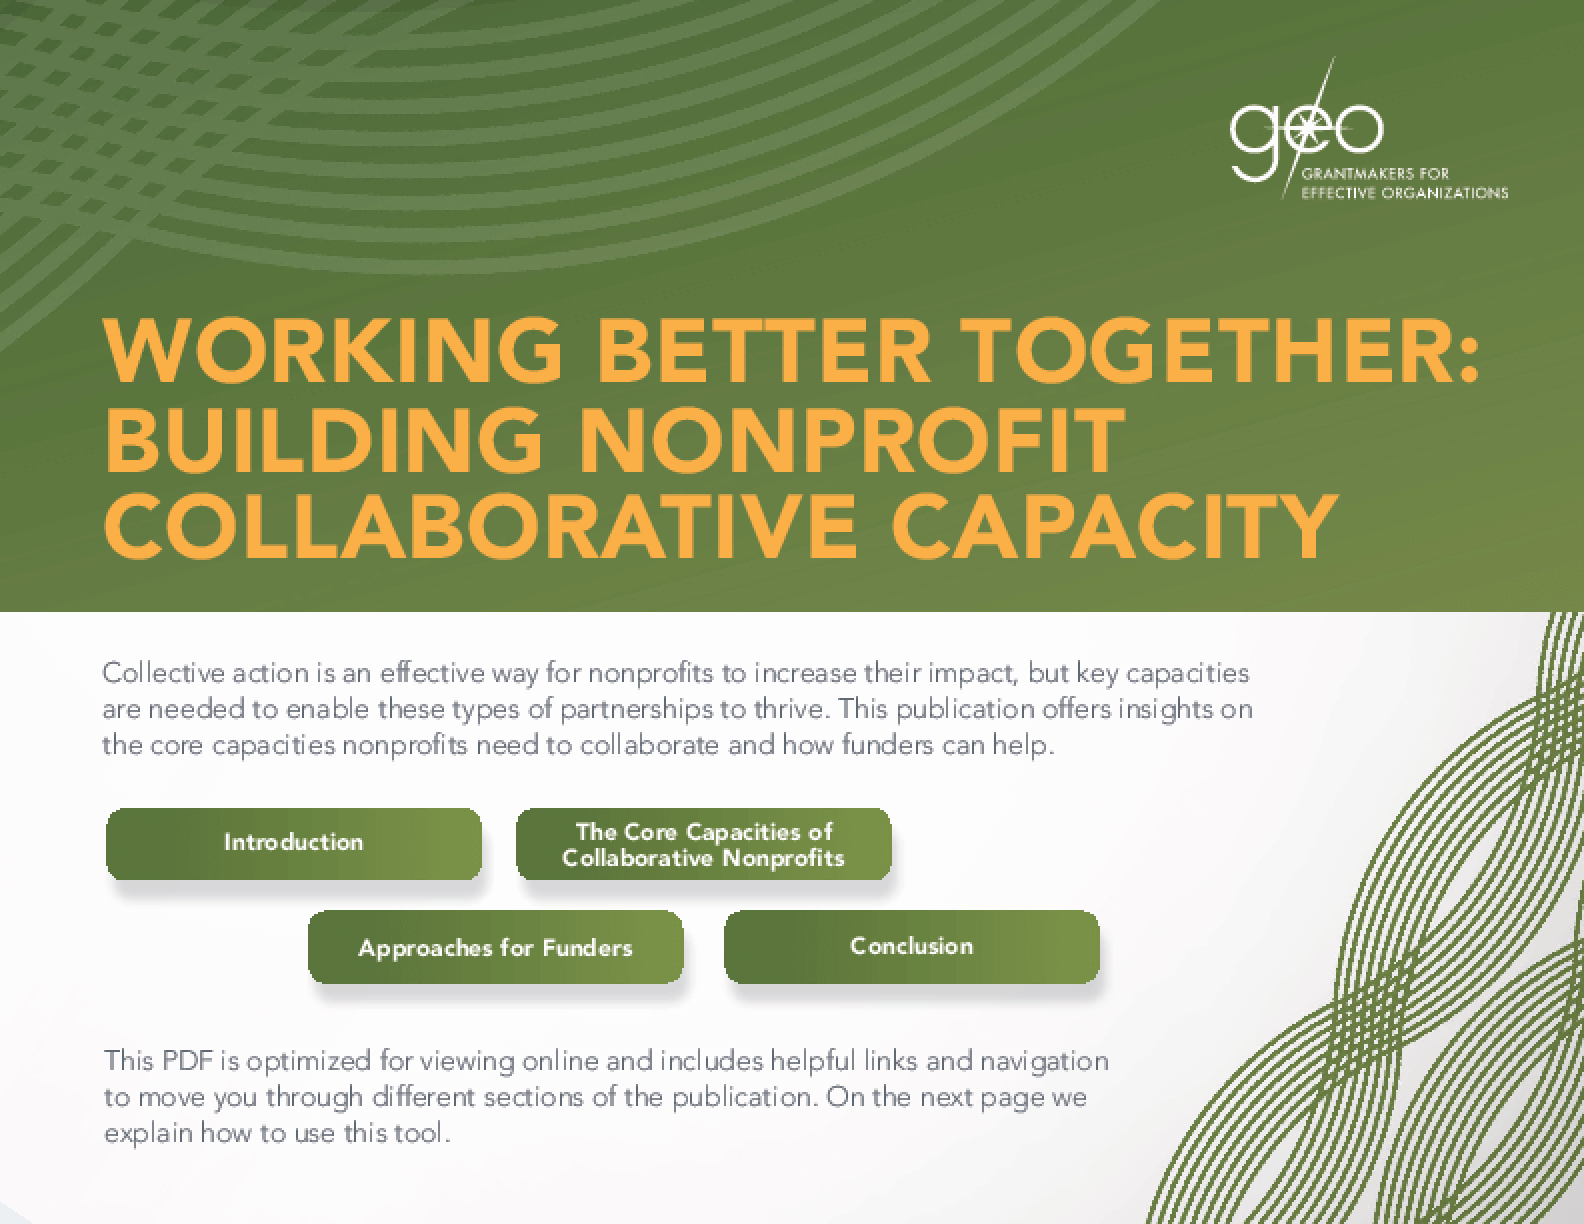 Working Better Together: Building Nonprofit Collaborative Capacity